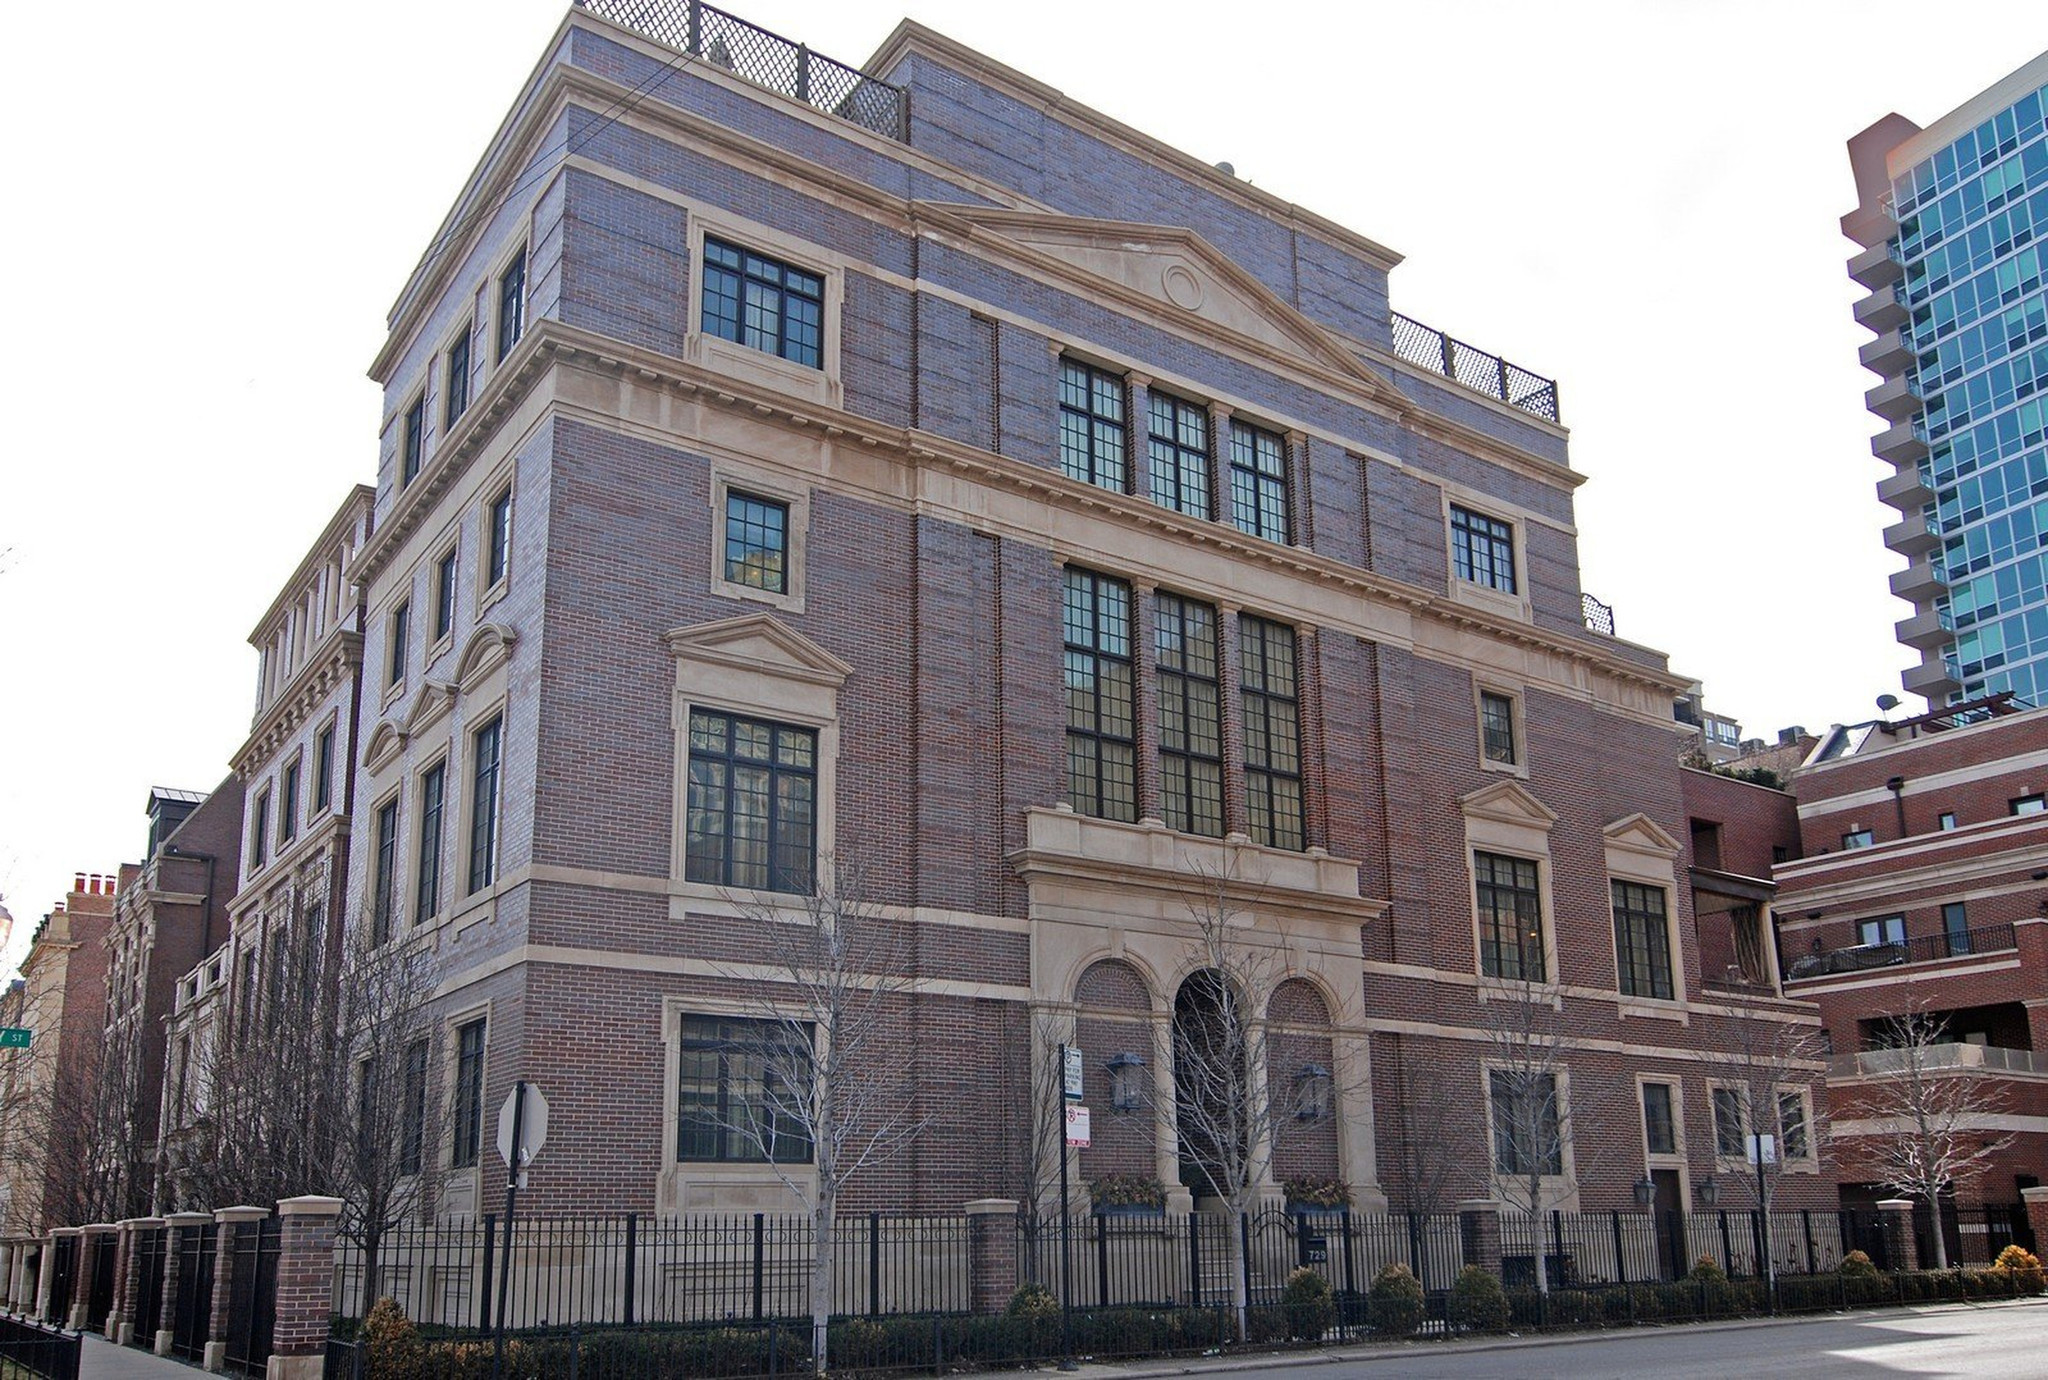 Jonathan and his wife, Lisa sold their River North mansion at real estate price of $4.7 million in 2015.